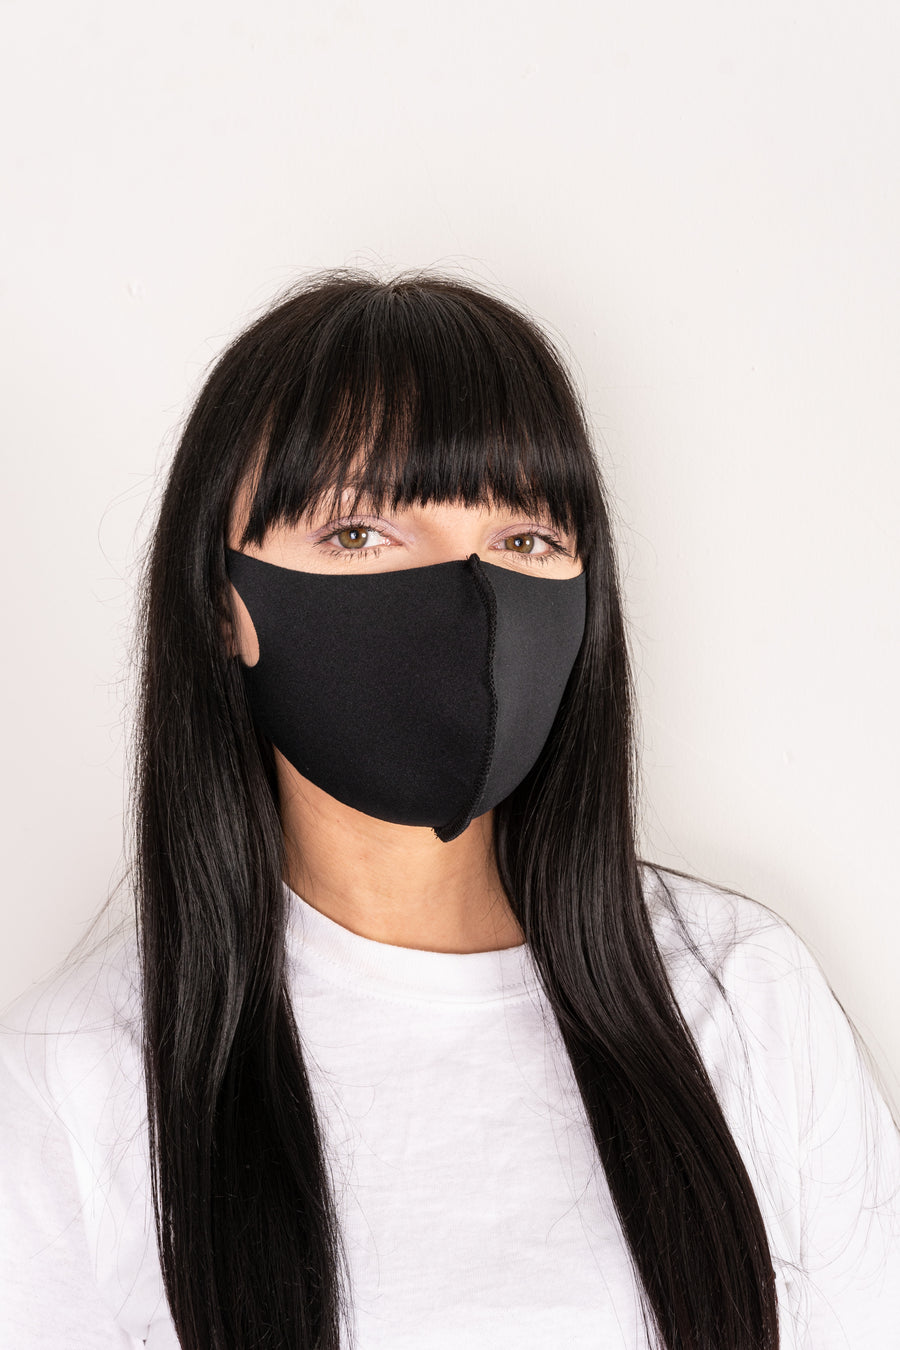 Neoprene face mask with ear straps.